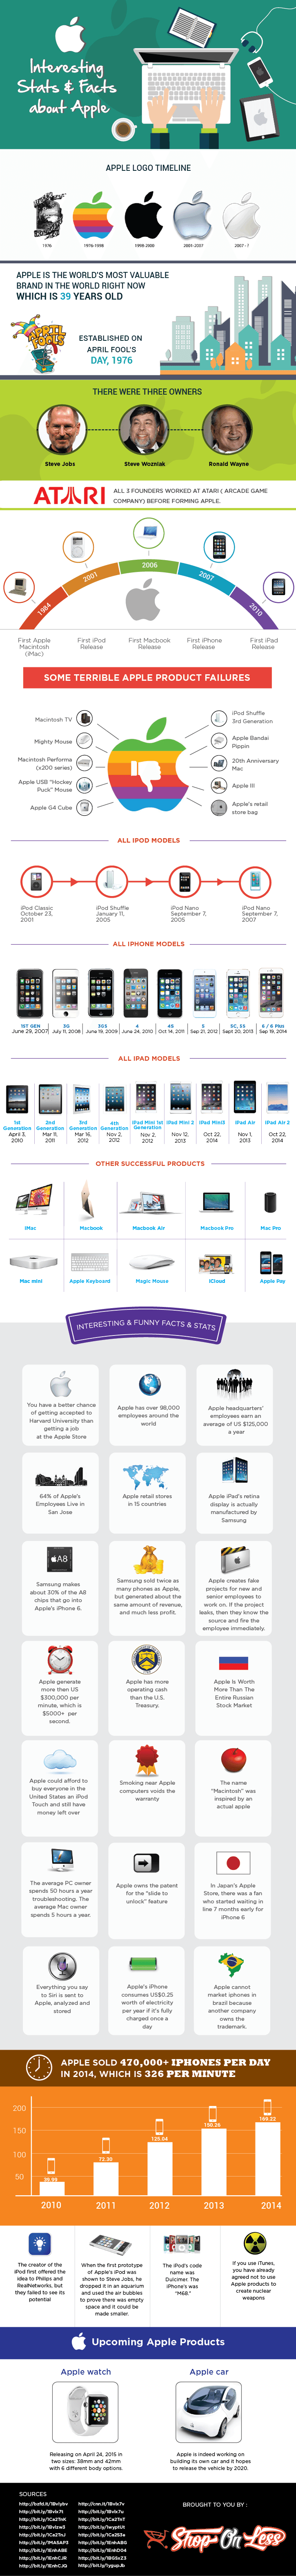 Interesting-Stats-&-Facts-About-Apple